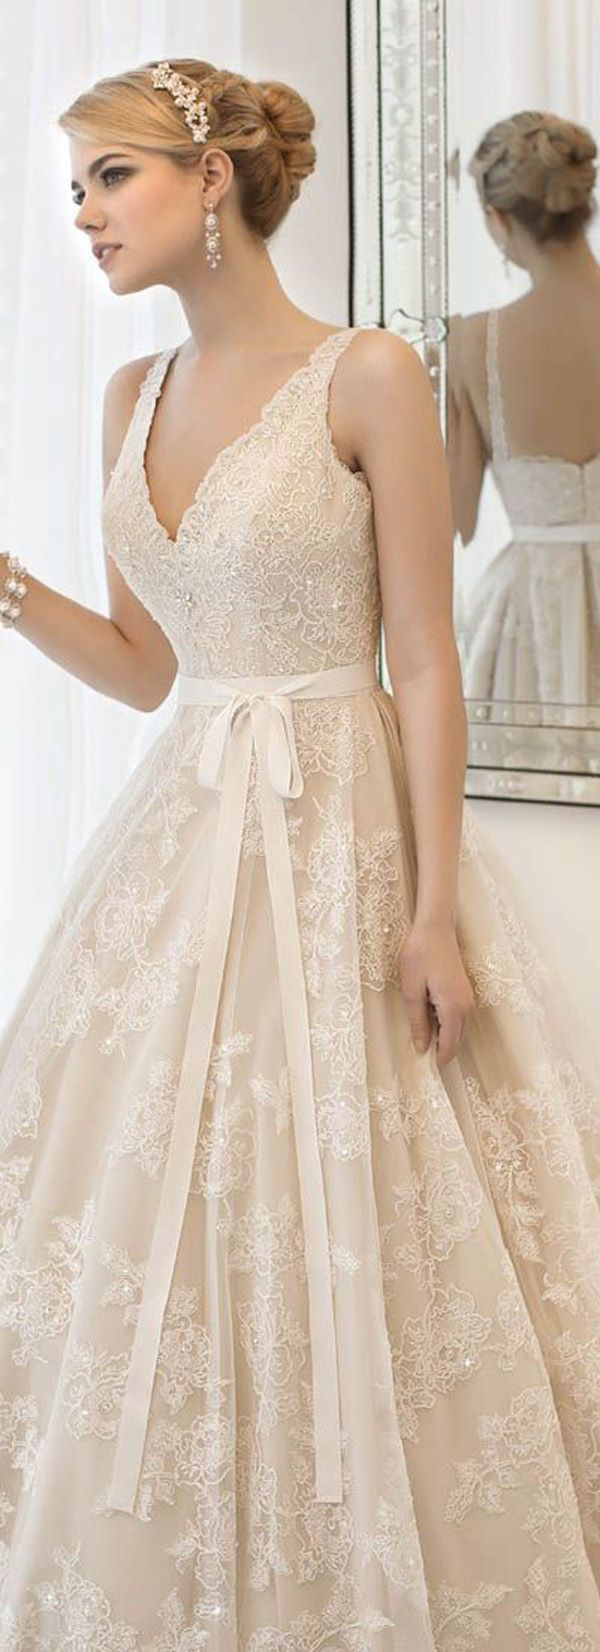 Top 20 vintage wedding dresses for 2016 brides beautiful for Vintage lace dress wedding